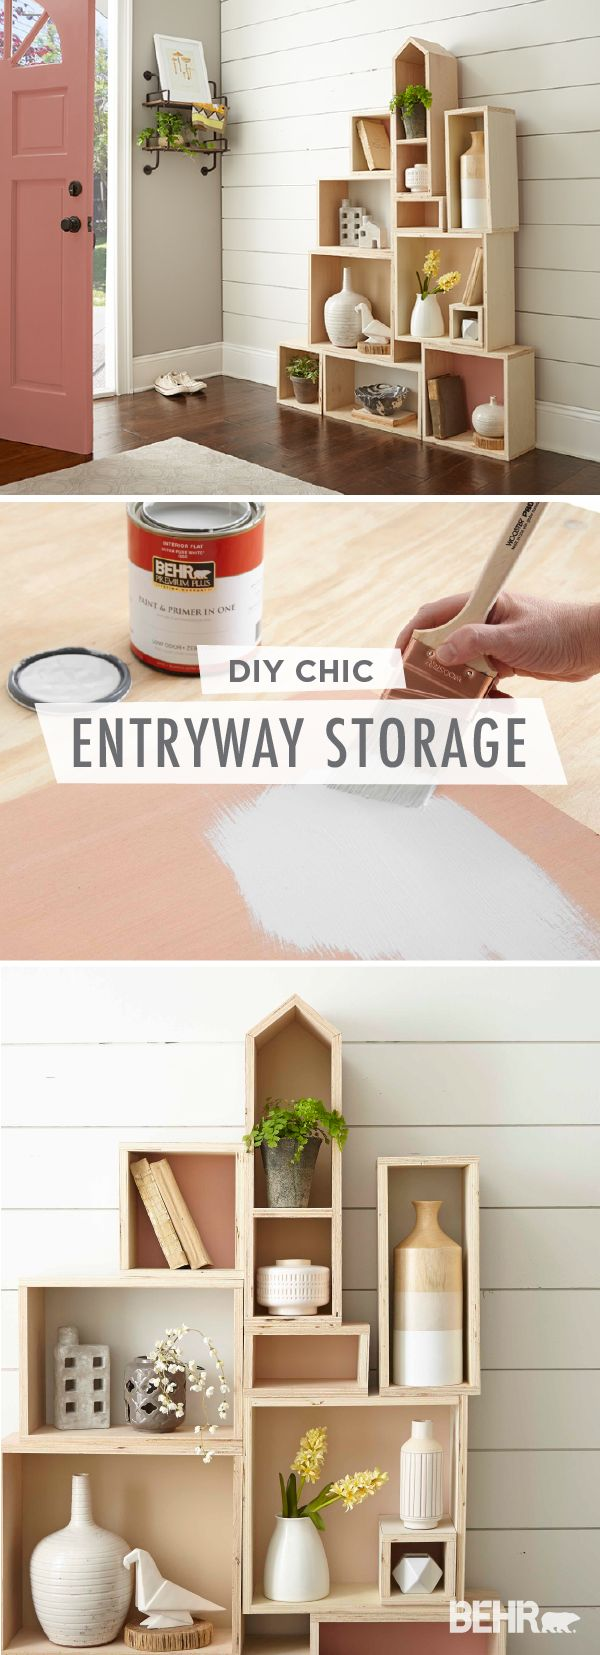 Use this DIY entryway storage box to keep your home looking stylish and organized at the same time. Stack plain wooden boxes together to create the layout of your storage system. Then, add a pop of color by painting each box with different shades like Life is a Peach, Everything's Rosy, Close Knit, and Sepia Filter. Click here for the full tutorial.